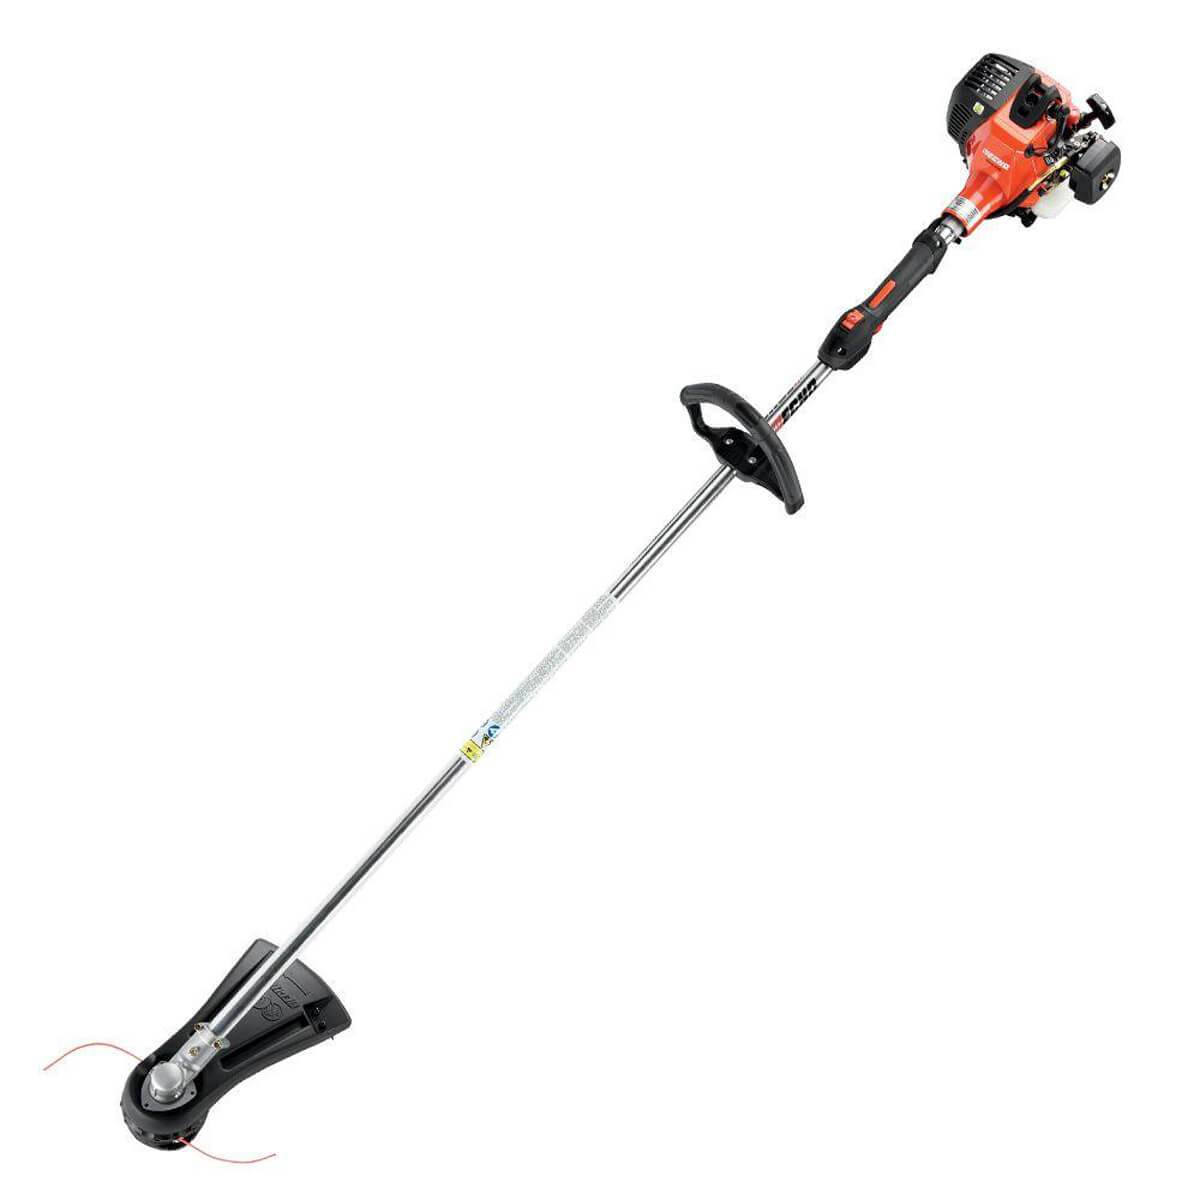 [FW_8892] Echo Weed Wacker Parts Echo Gt200 Parts List And